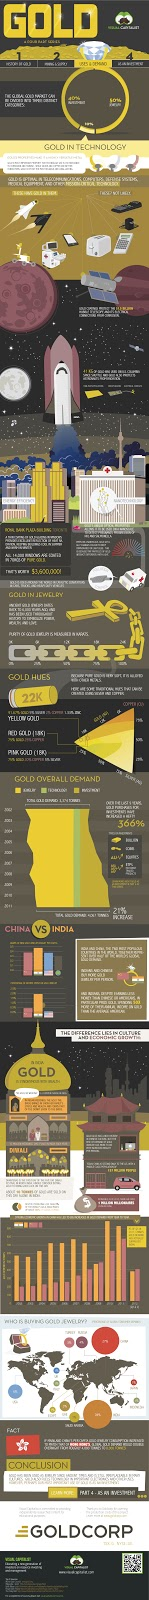 The Gold Series: Uses and Demand